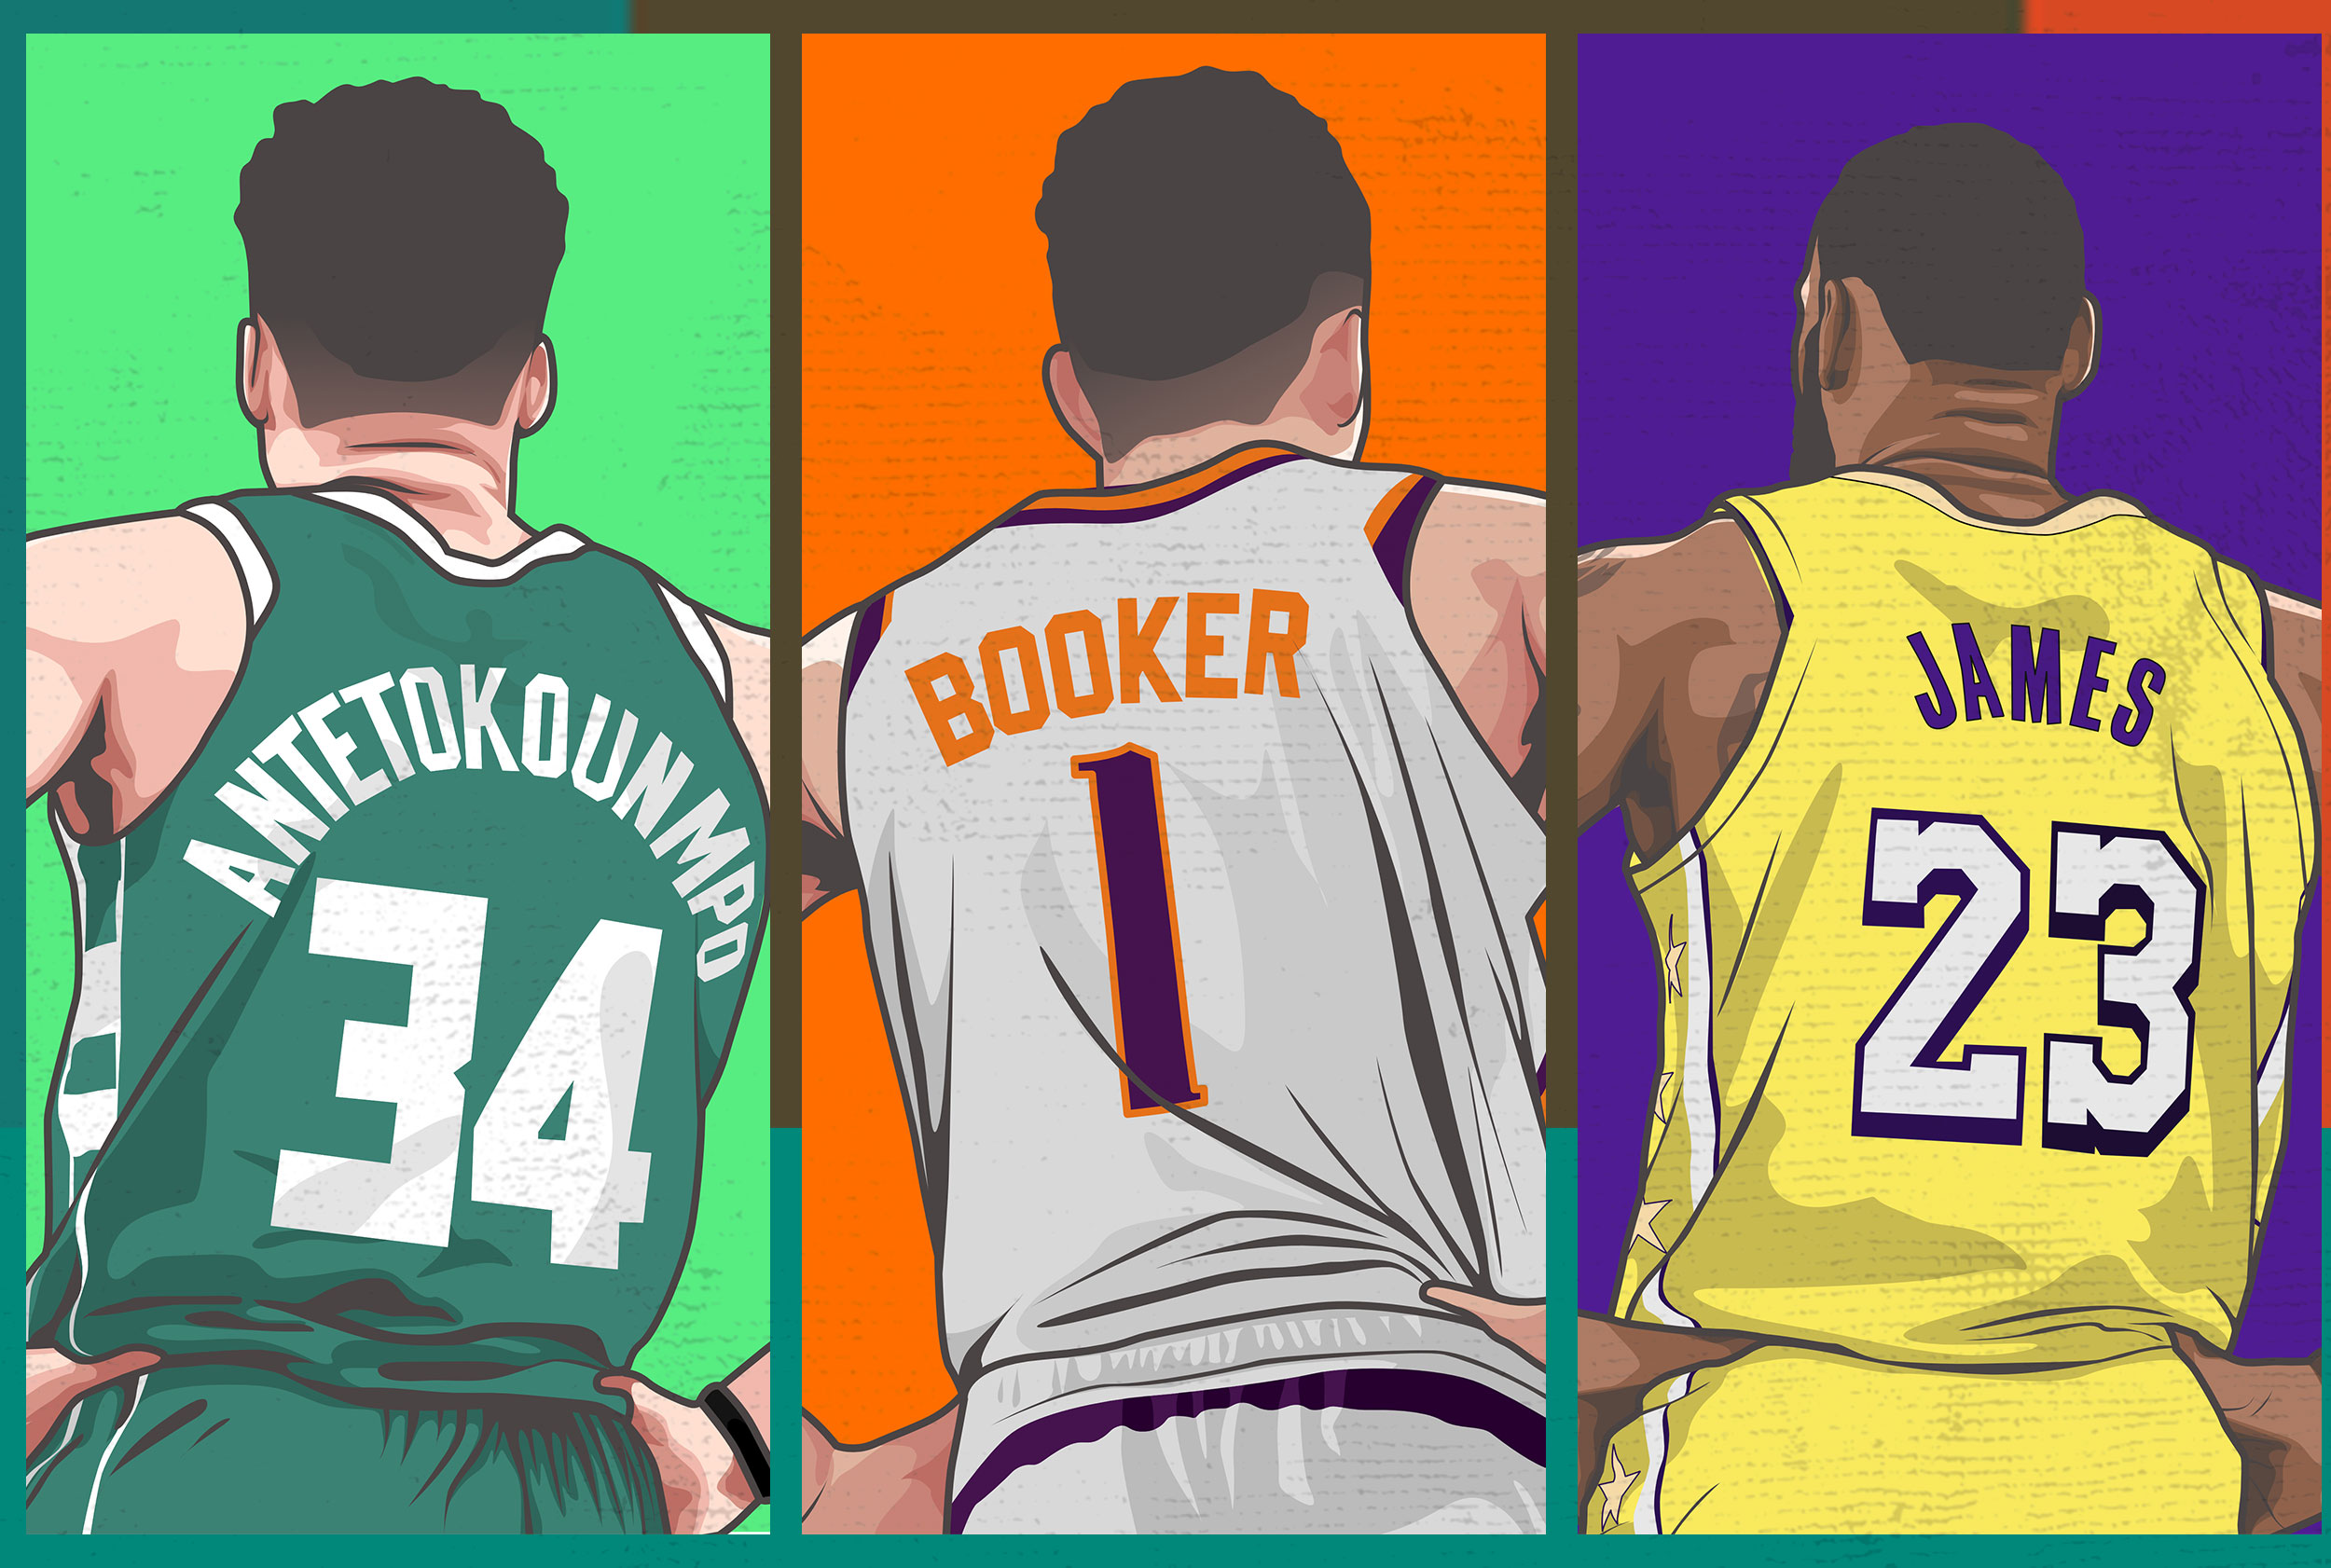 I WILL TURN YOUR PHOTO INTO ATTRACTIVE SPORTS CARTOON VECTOR ART